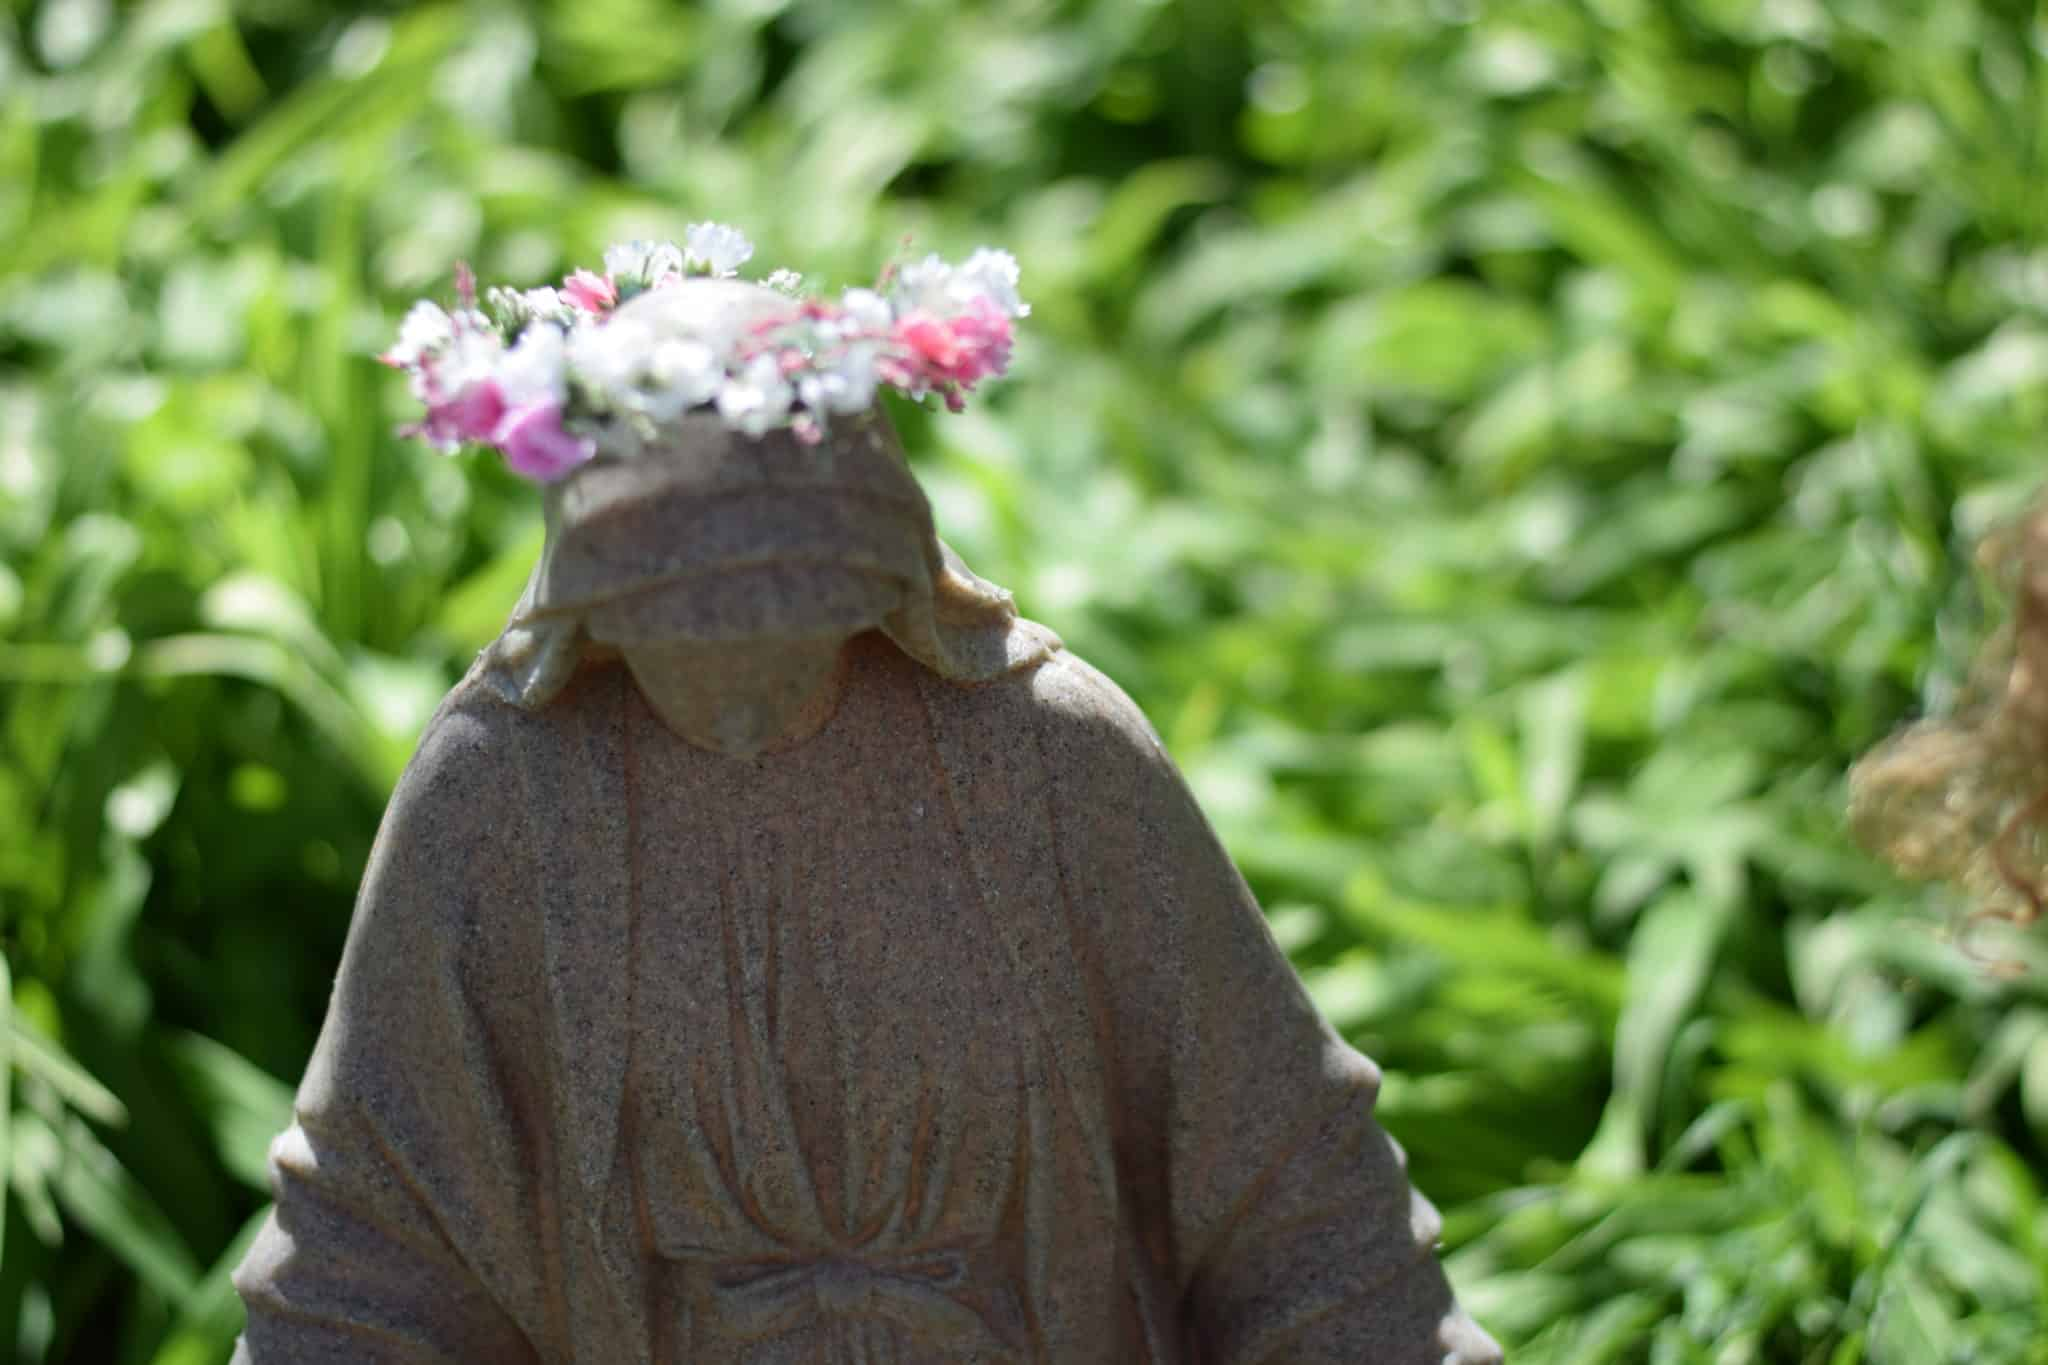 outdoor Mary statue with flower crown